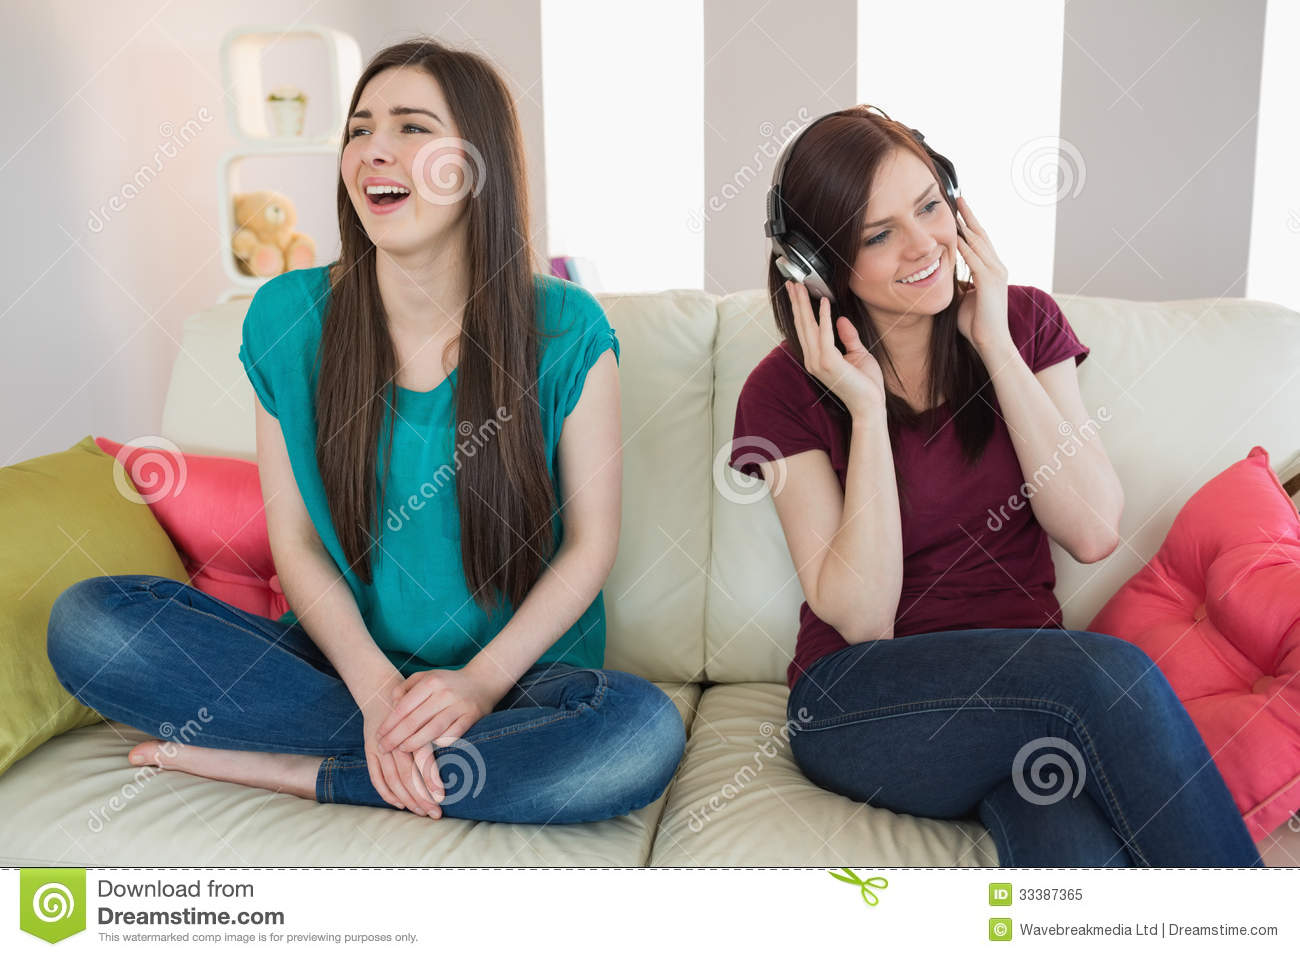 Girl Listening To Music With Her Friend Beside Her On The ...